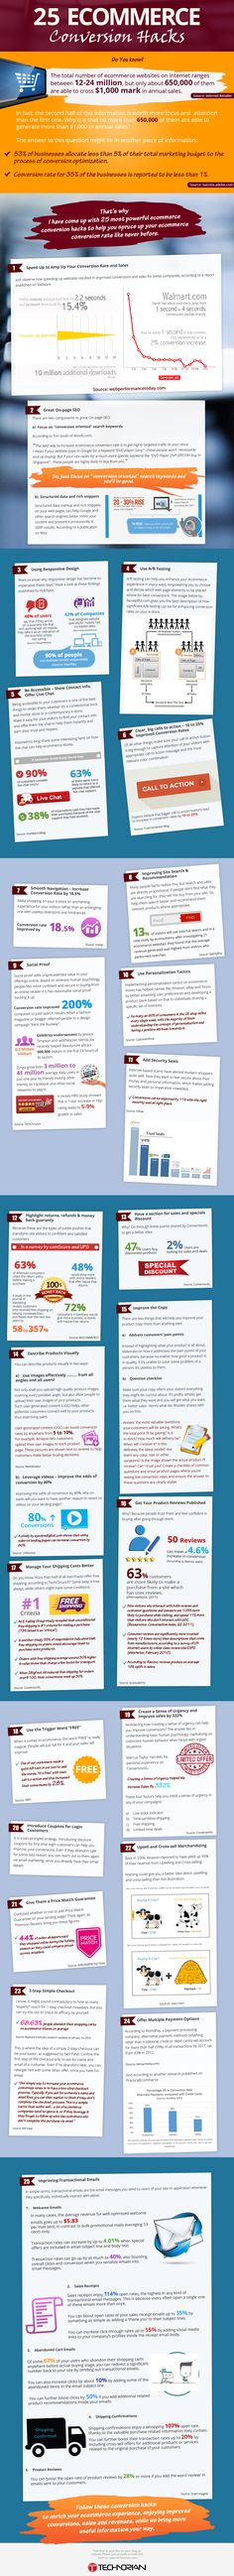 25 Ways to Improve Your Online Sales Process [Infographic]